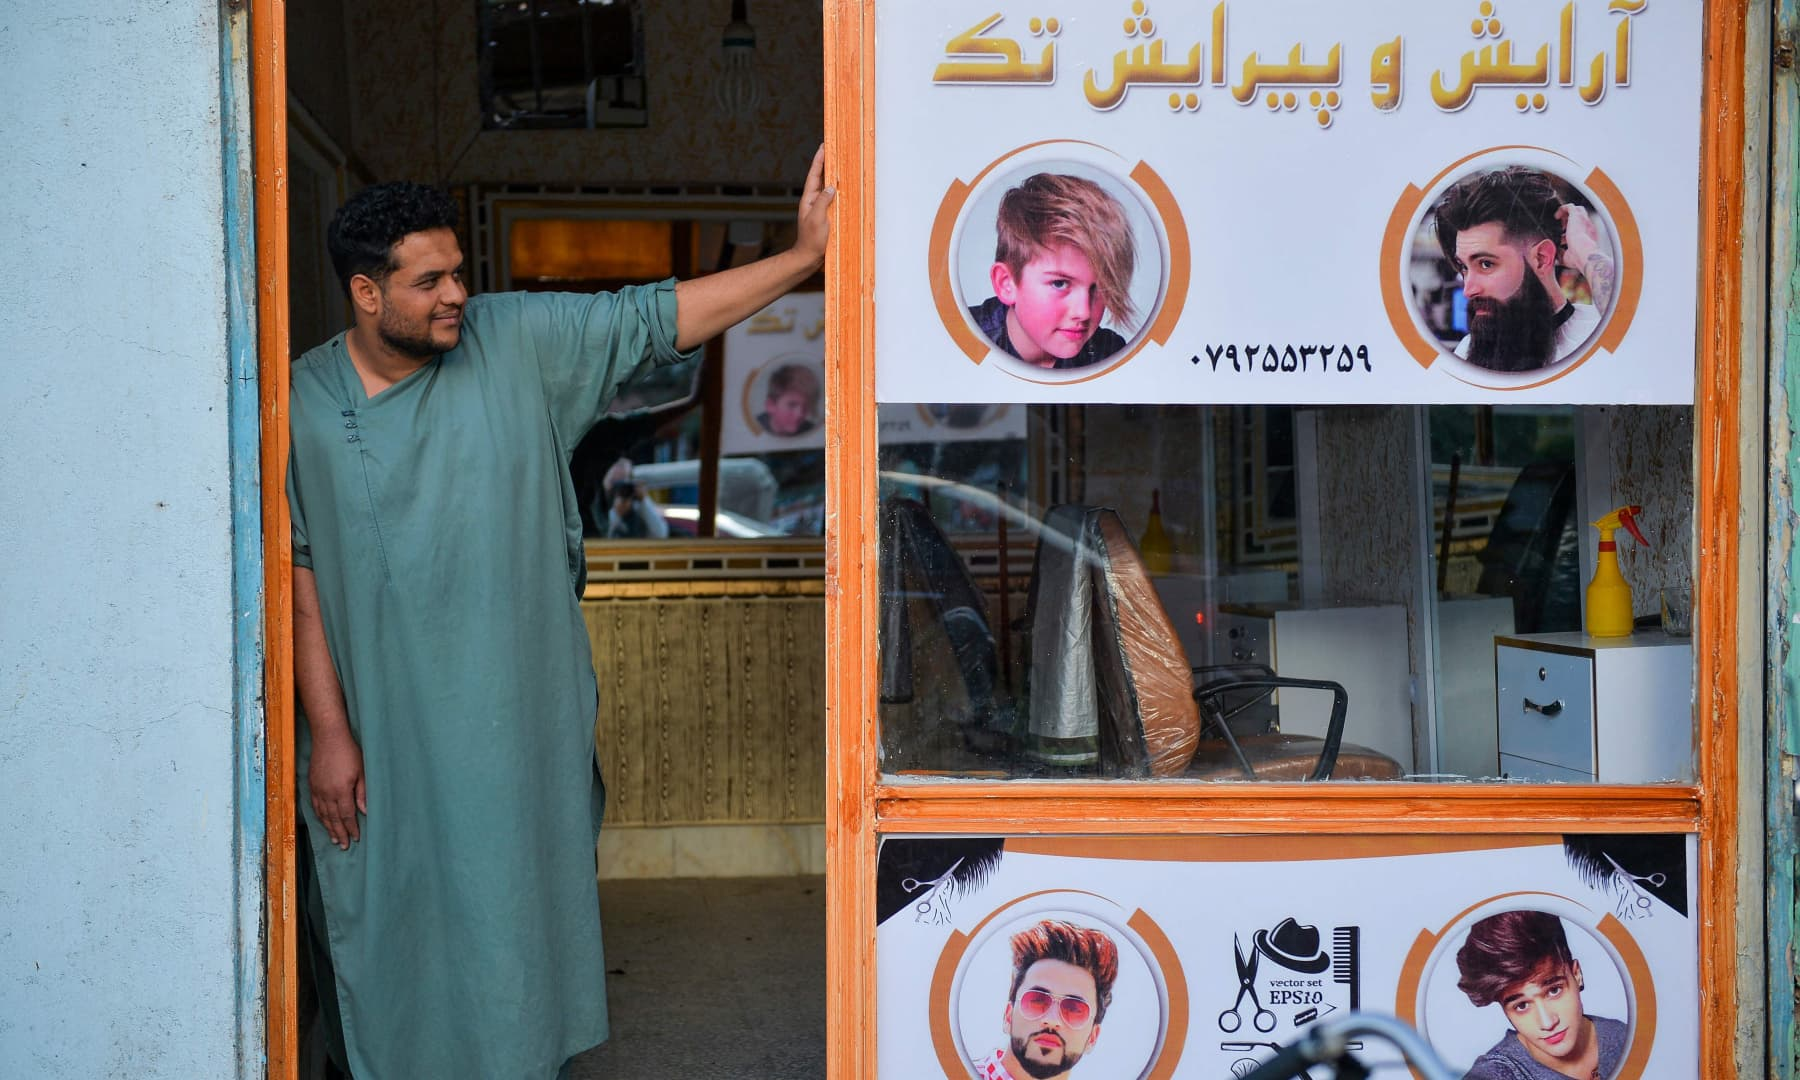 A barber waits for customers at his shop in Herat, Afghanistan on September 19, 2021. — AFP